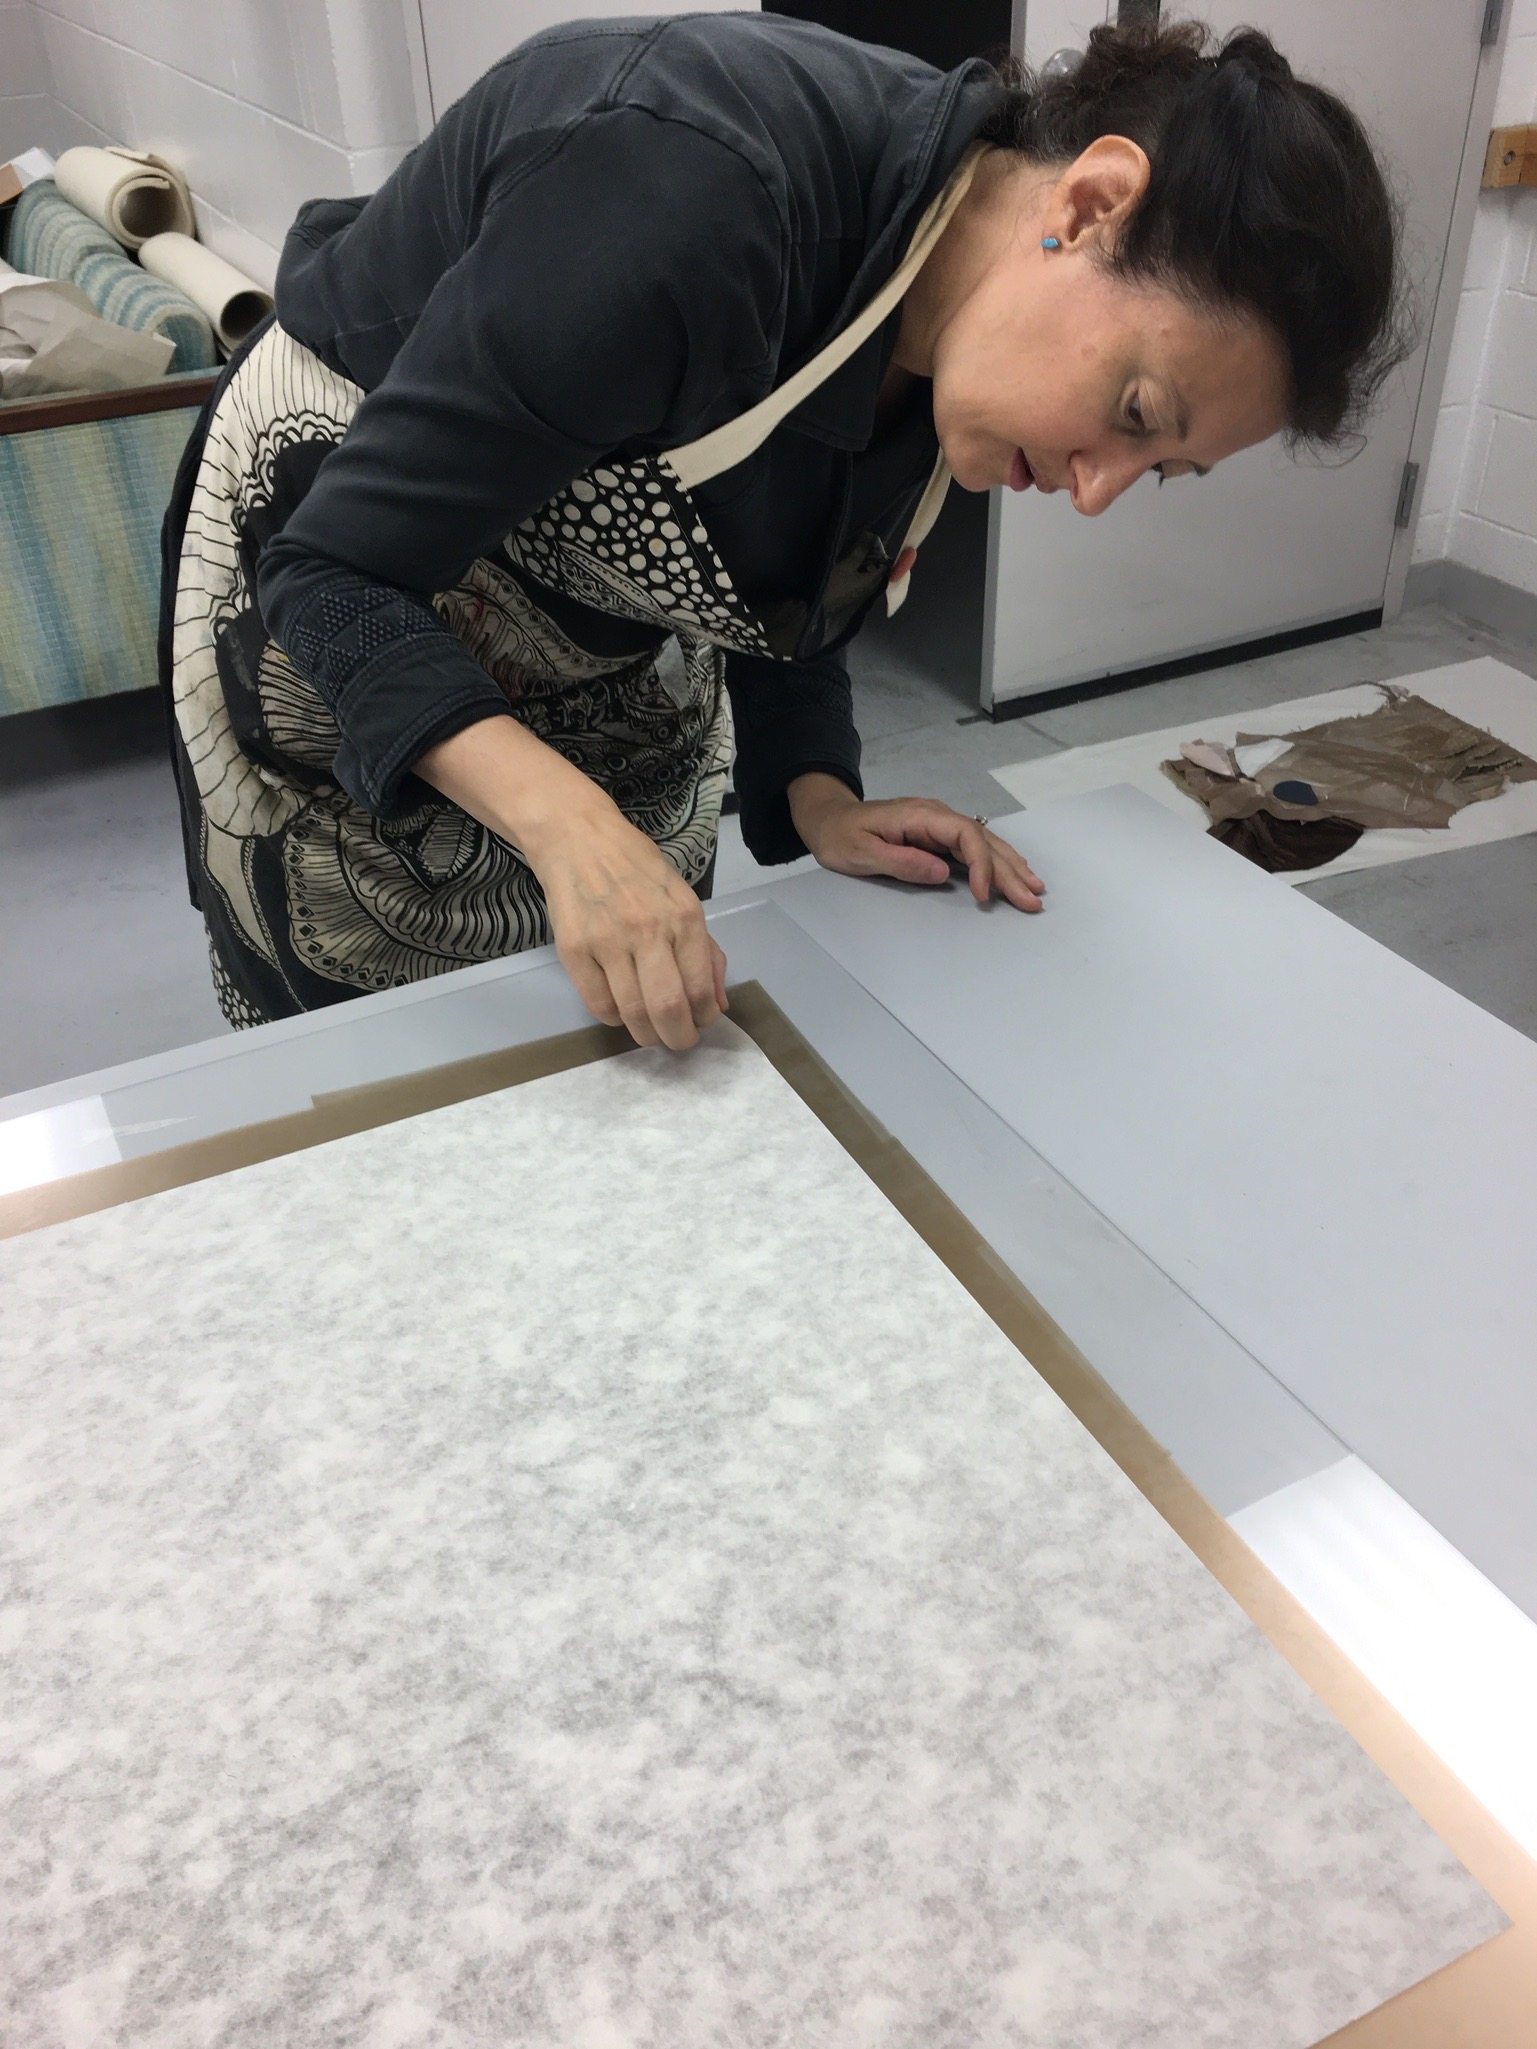 Image of Denise closely investigating prints on a table